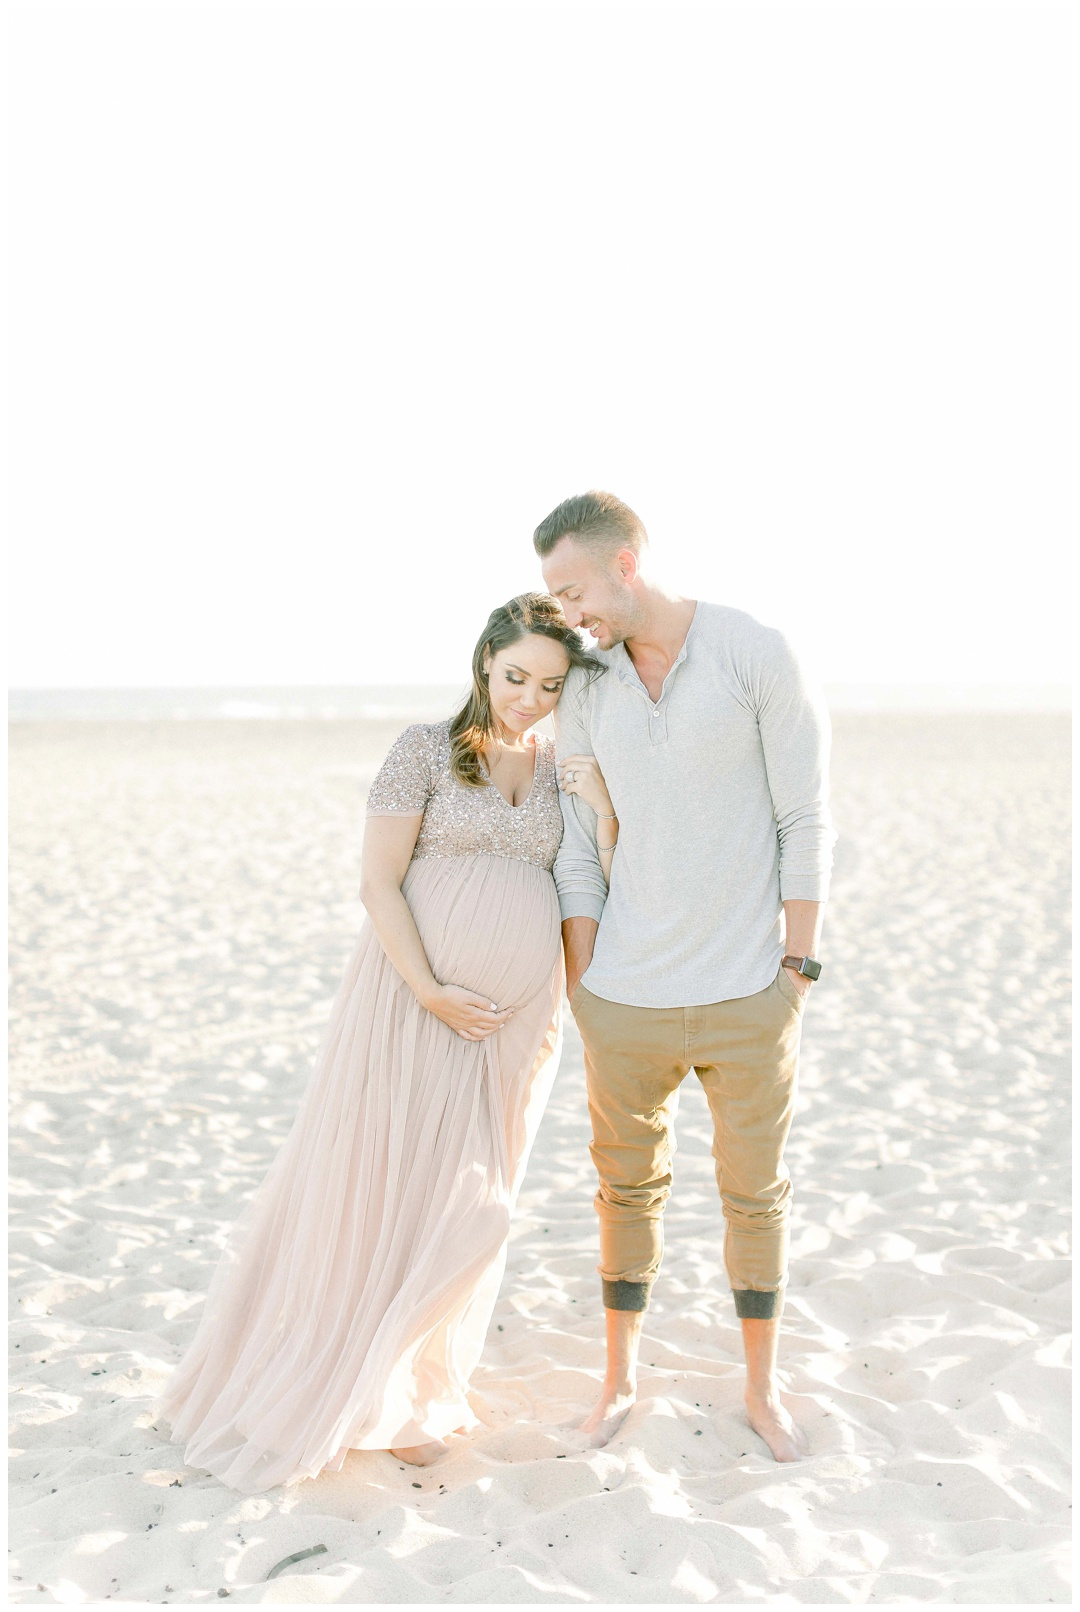 Newport_Beach_Maternity_Photographer_Newport_Beach_Newborn_Photography_Orange_County_Newborn_Photographer_Cori_Kleckner_Photography_Orange_County_in-home_Photography__2131.jpg